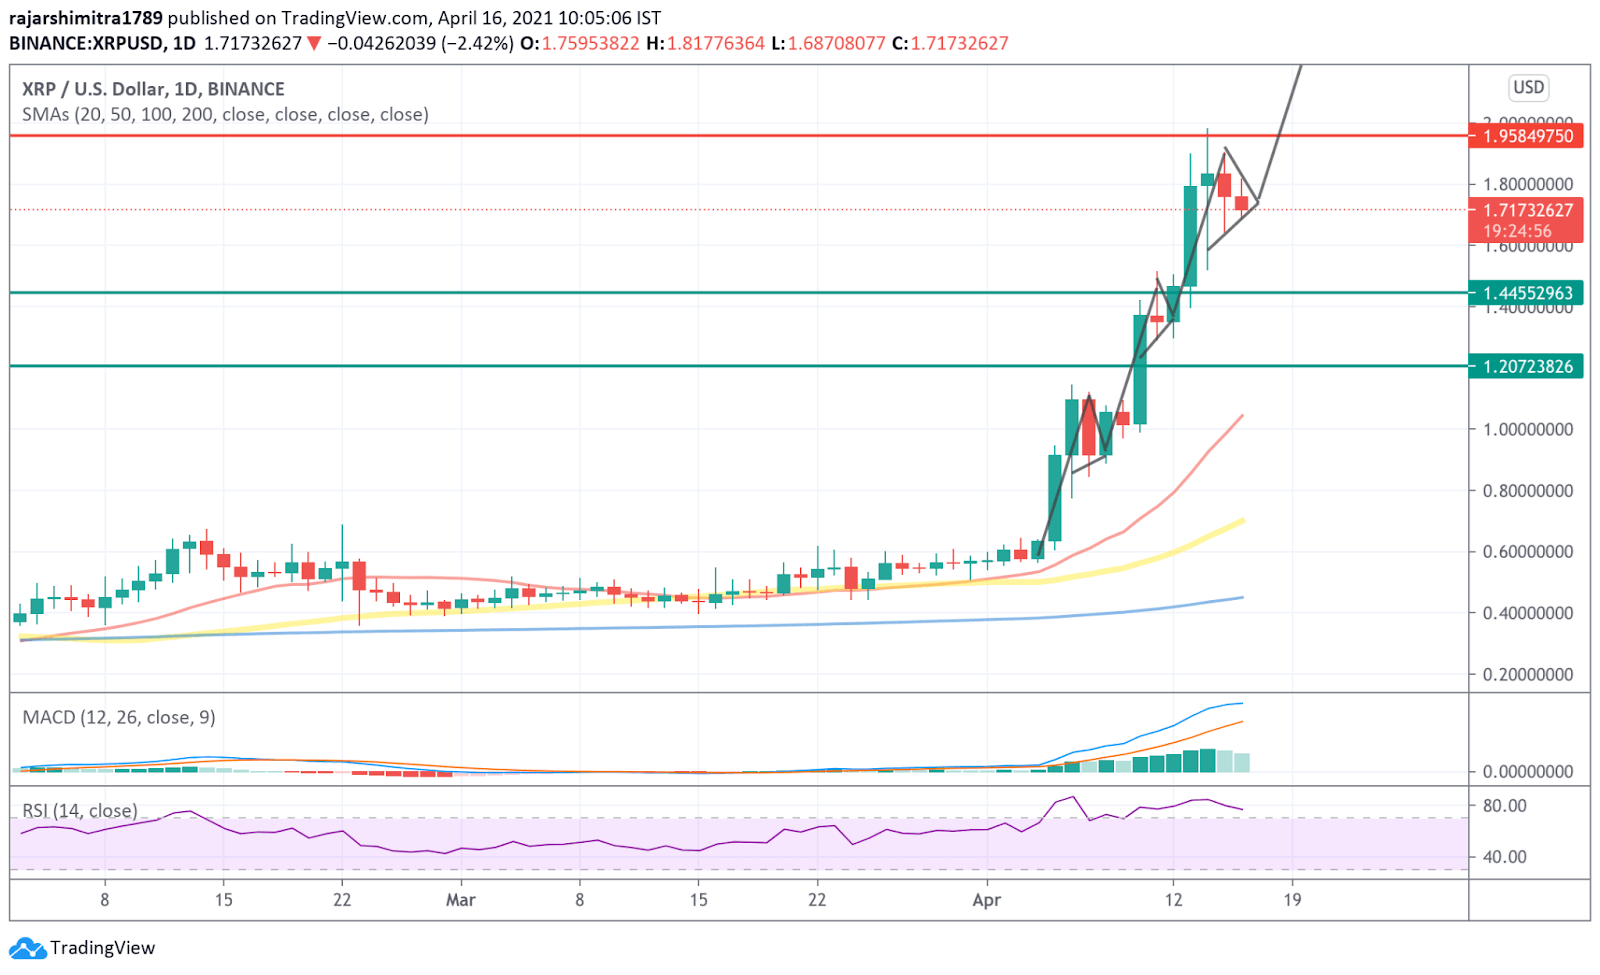 xrp/usd daily chart 041621